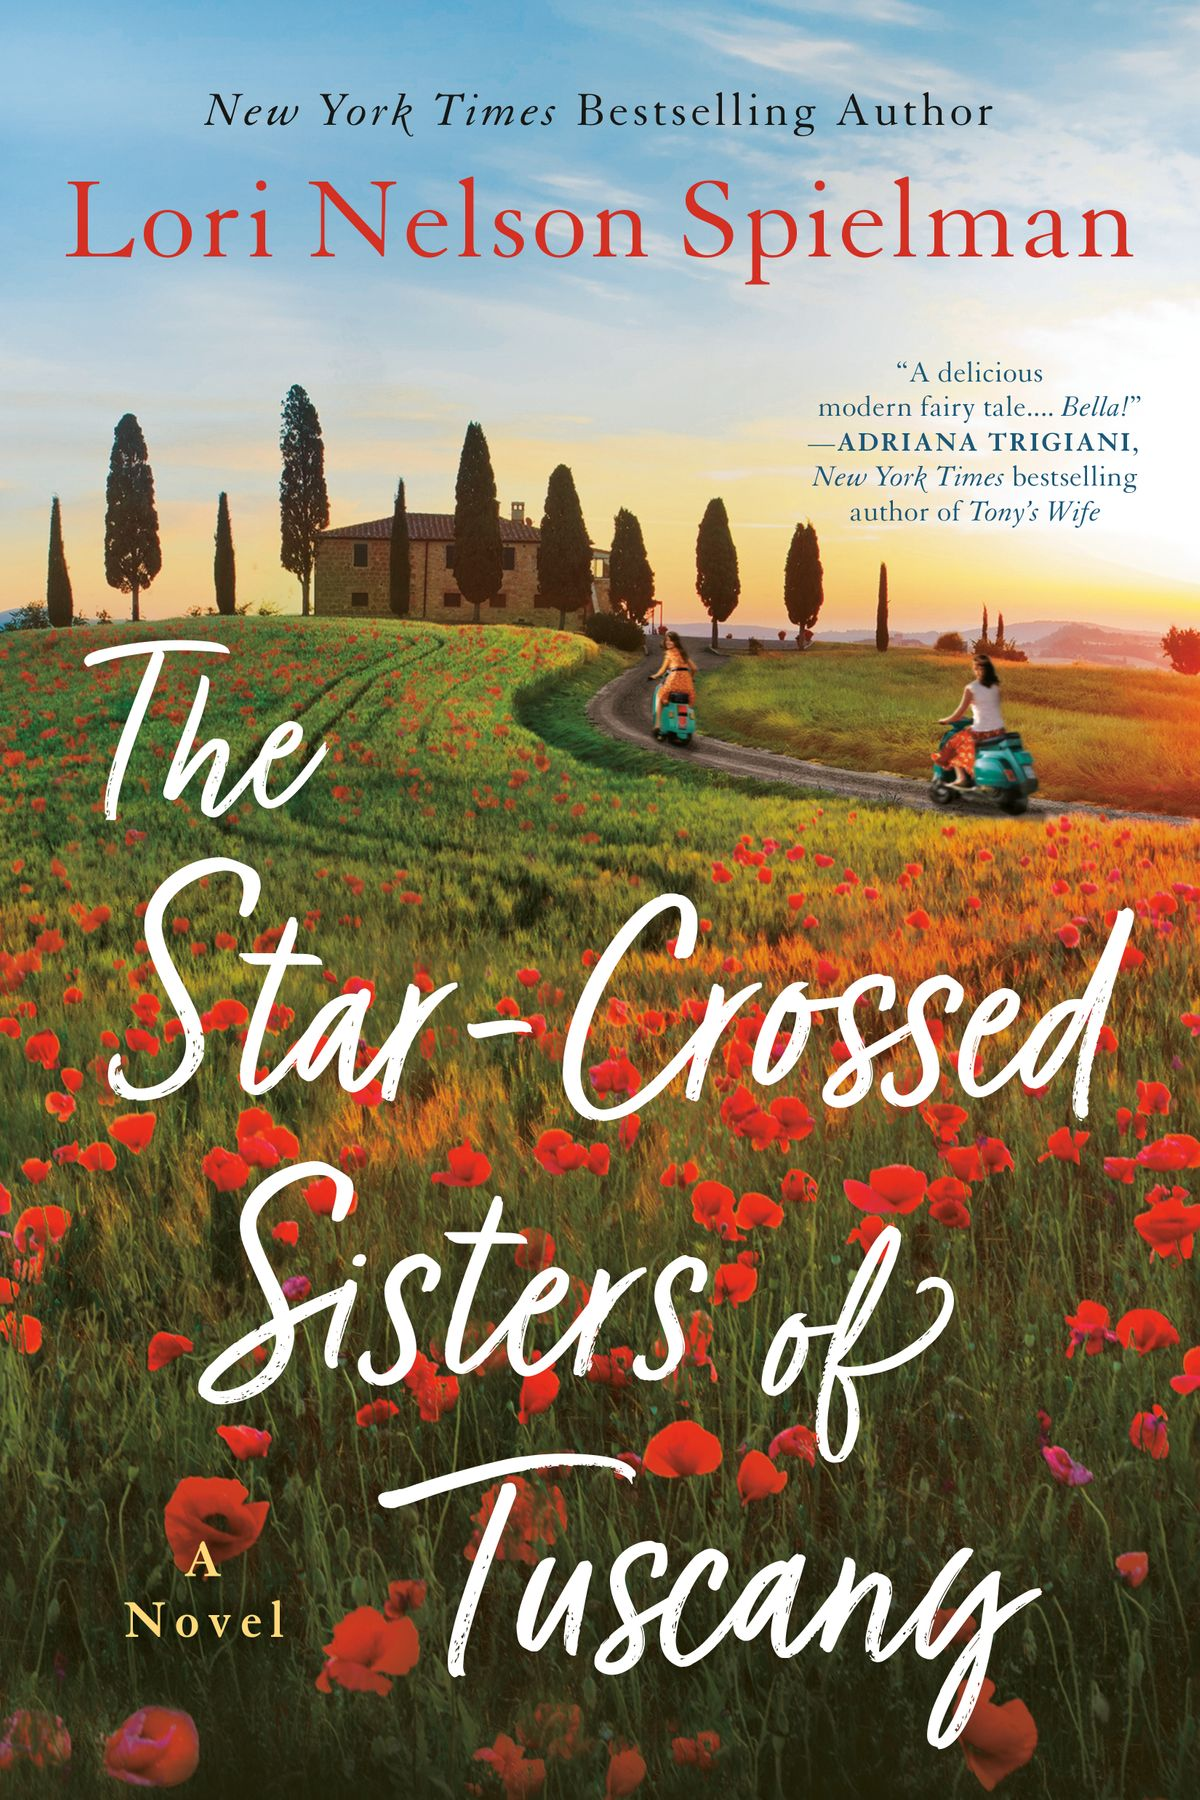 the-star-crossed-sisters-of-tuscany